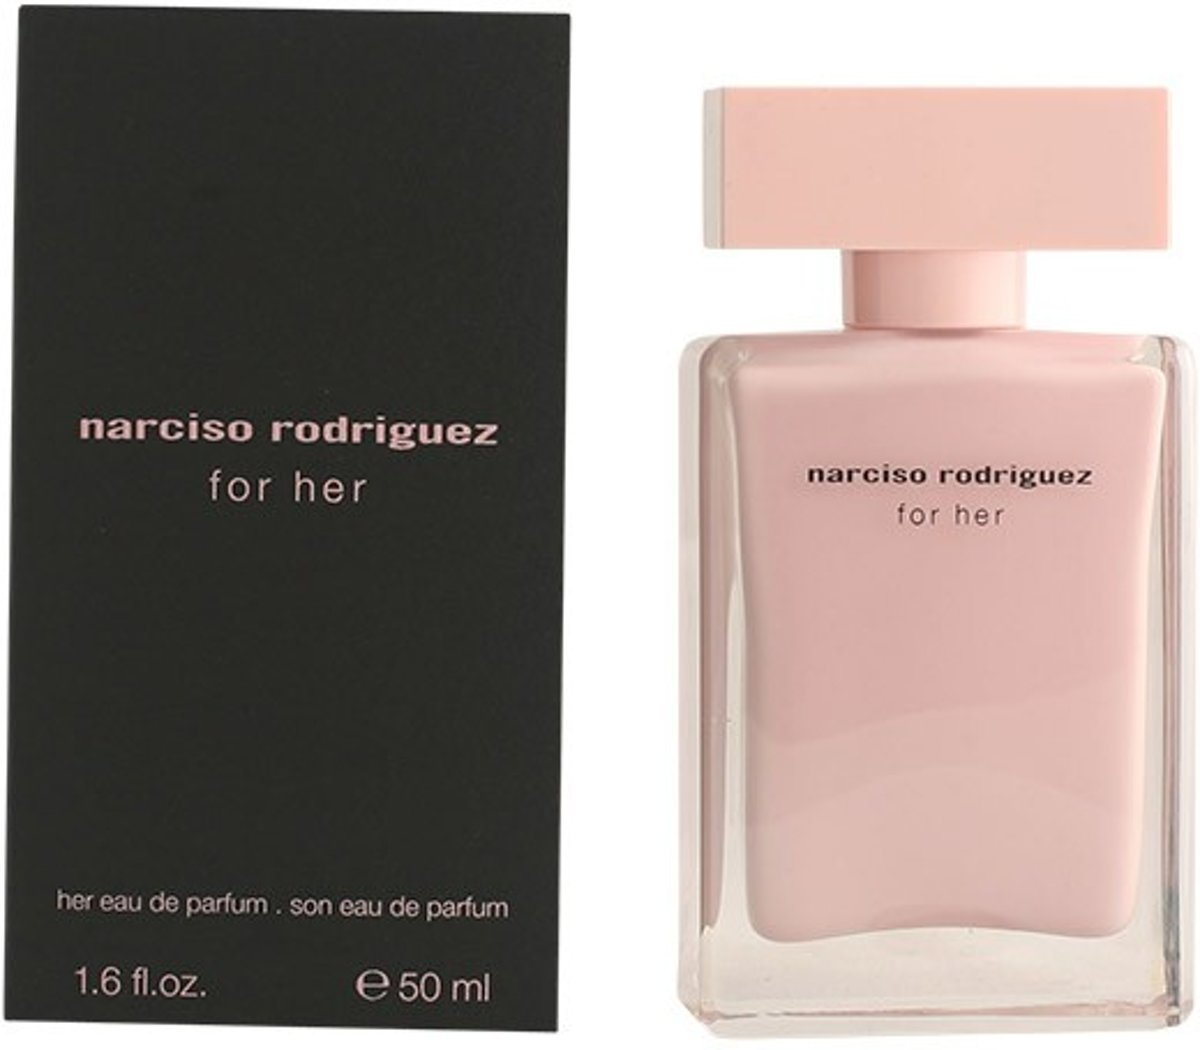 MULTI BUNDEL 2 stuks NARCISO RODRIGUEZ FOR HER Eau de Perfume Spray 50 ml